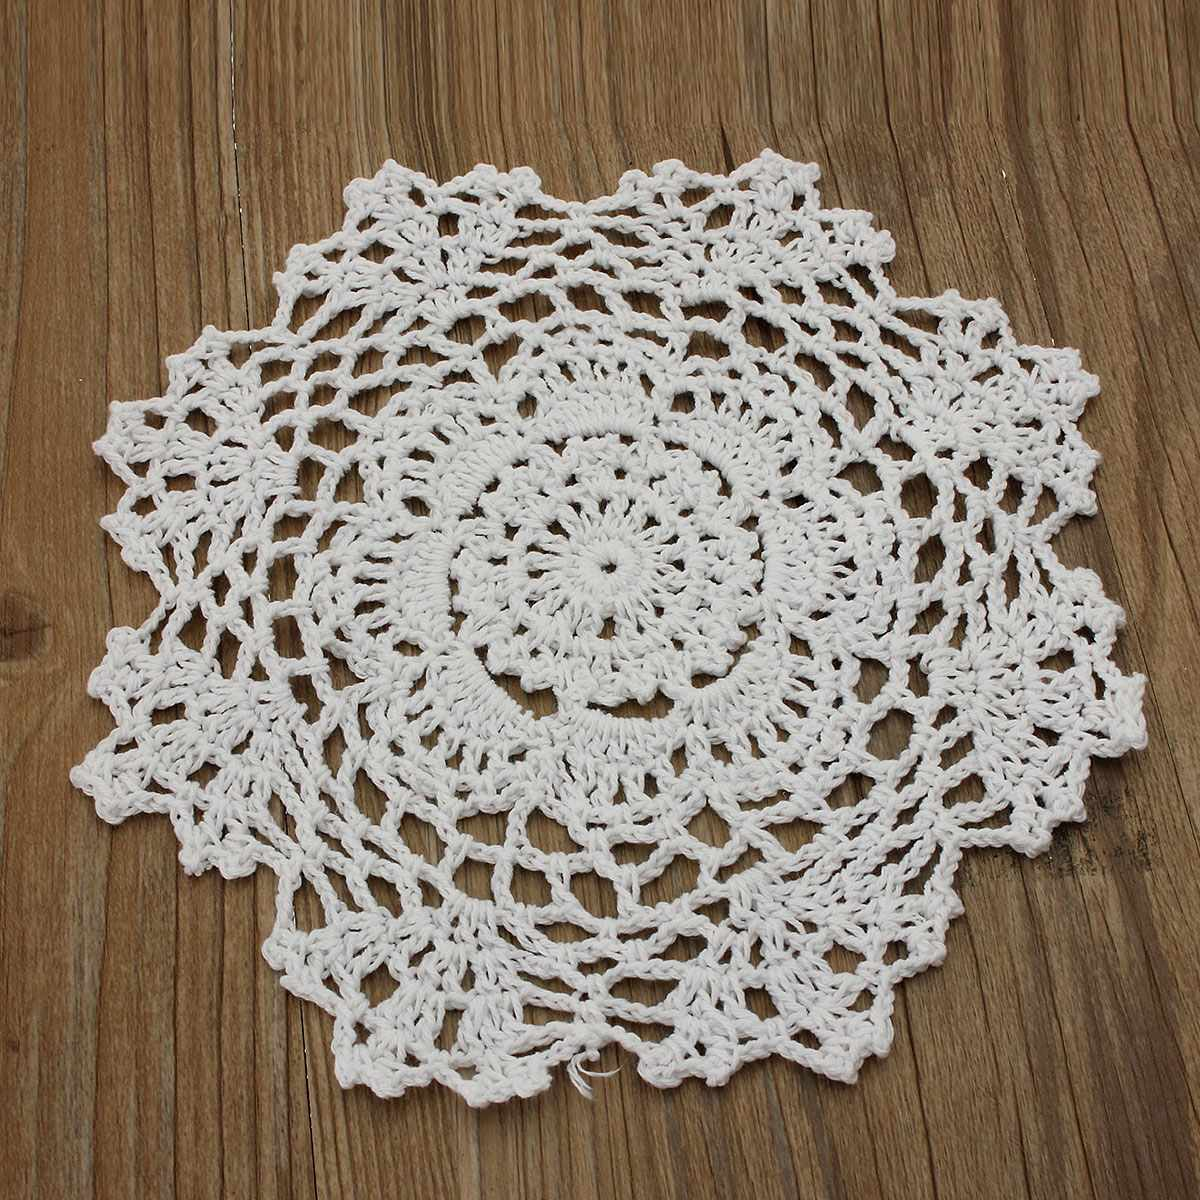 8 round handmade crochet lace floral doilies vintage knit cup coasters tableware placemat pad wedding